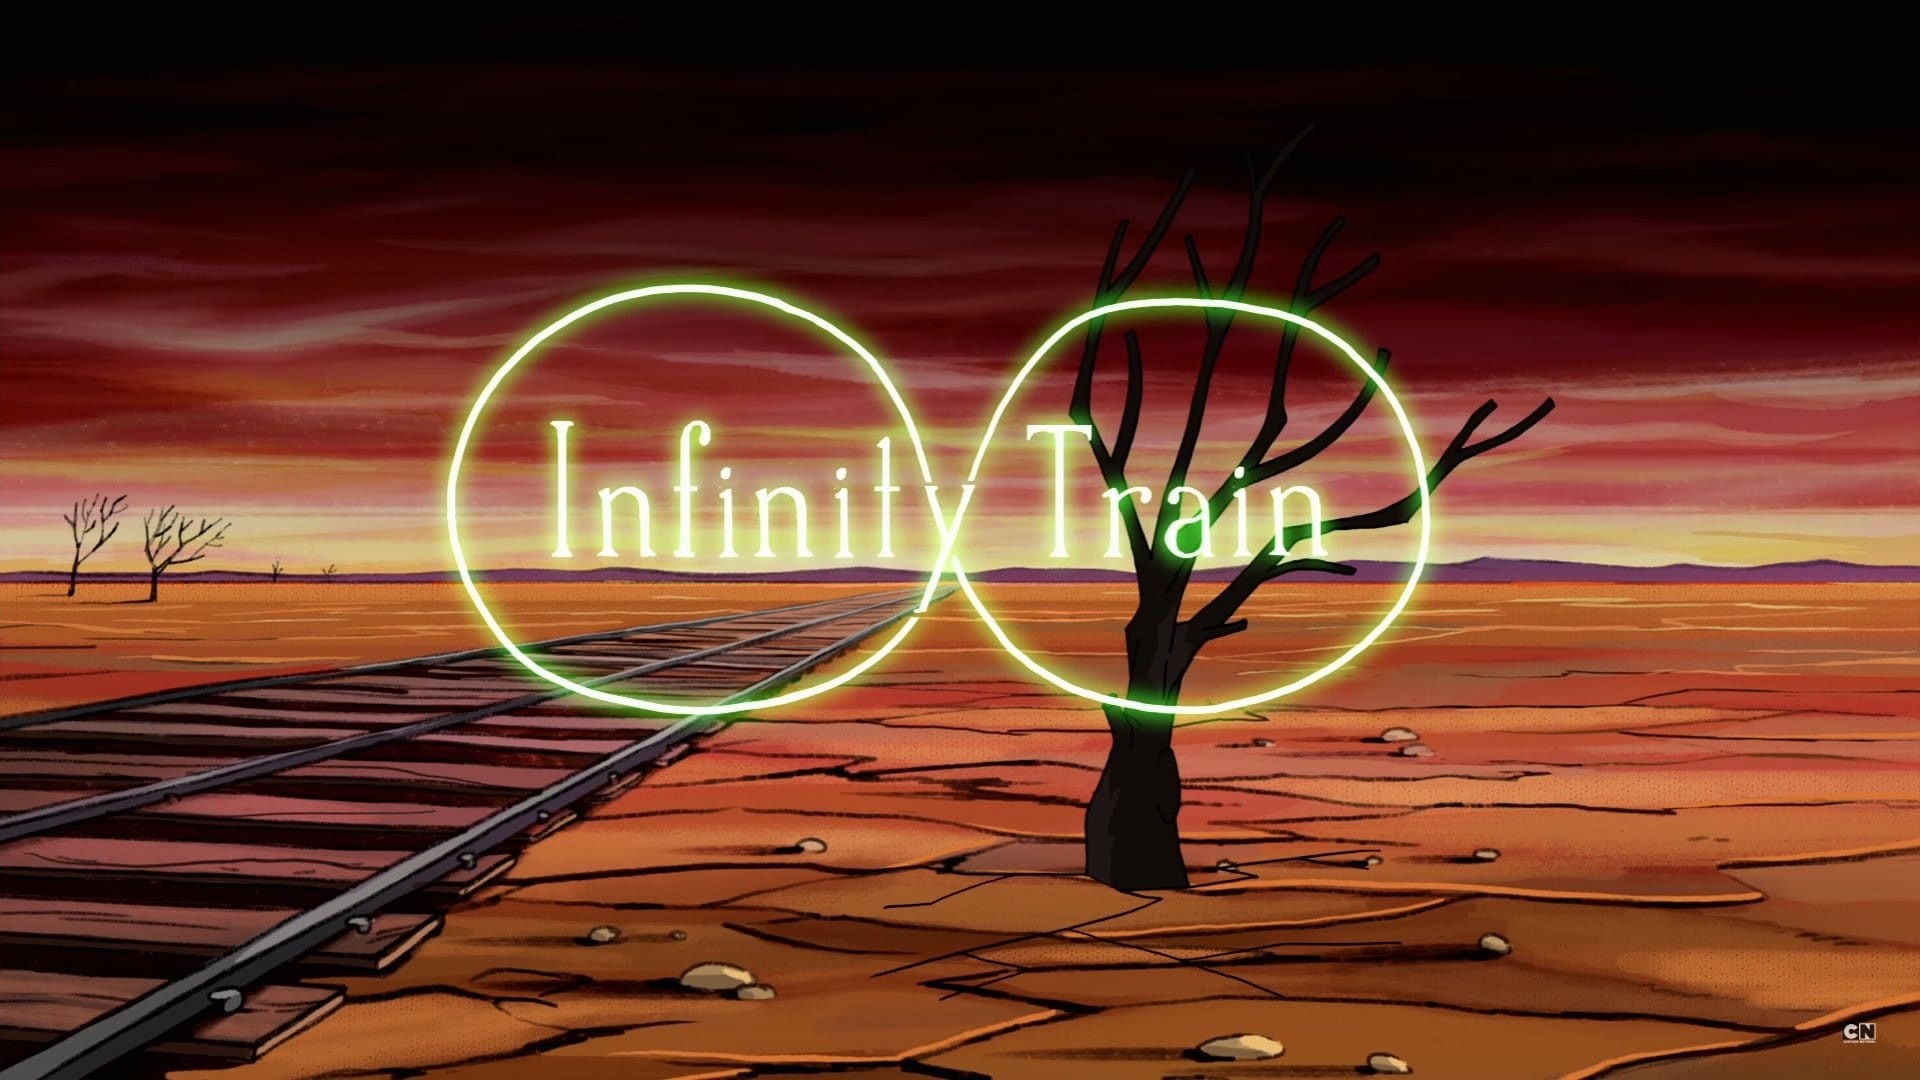 Infinity Train Picture